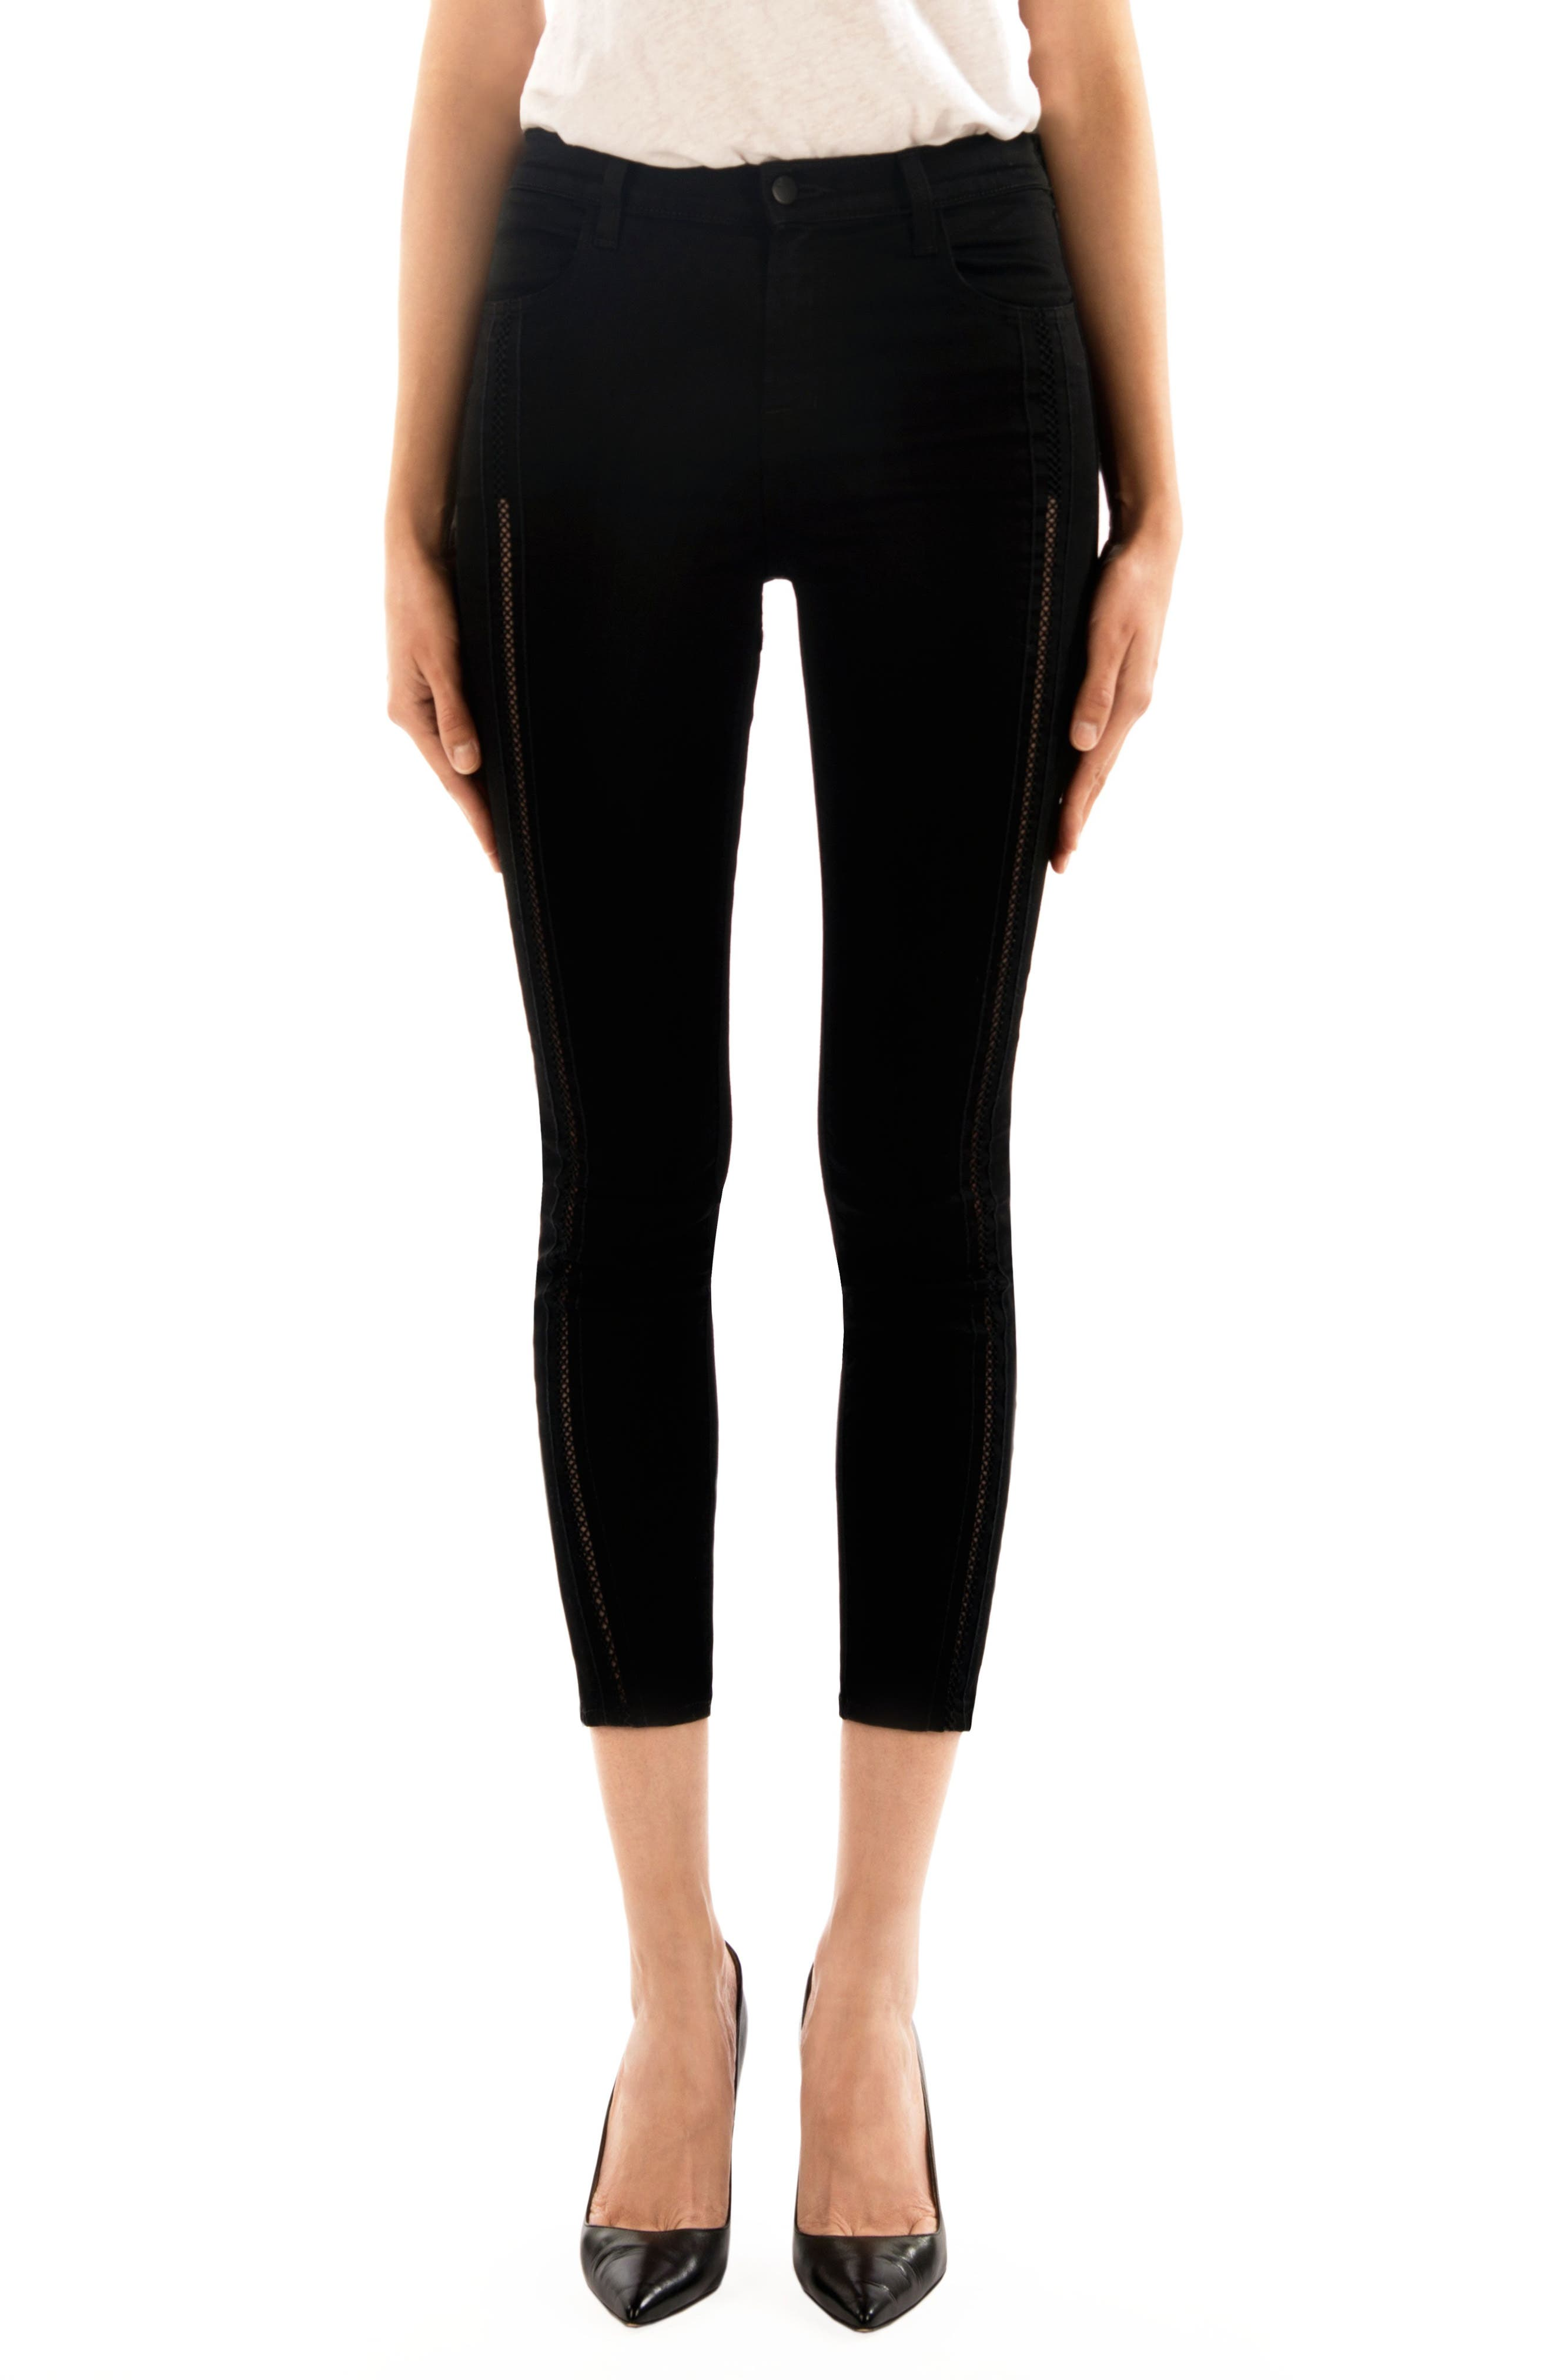 Alana High Waist Crop Skinny Jeans,                         Main,                         color, Black Ladder Lace